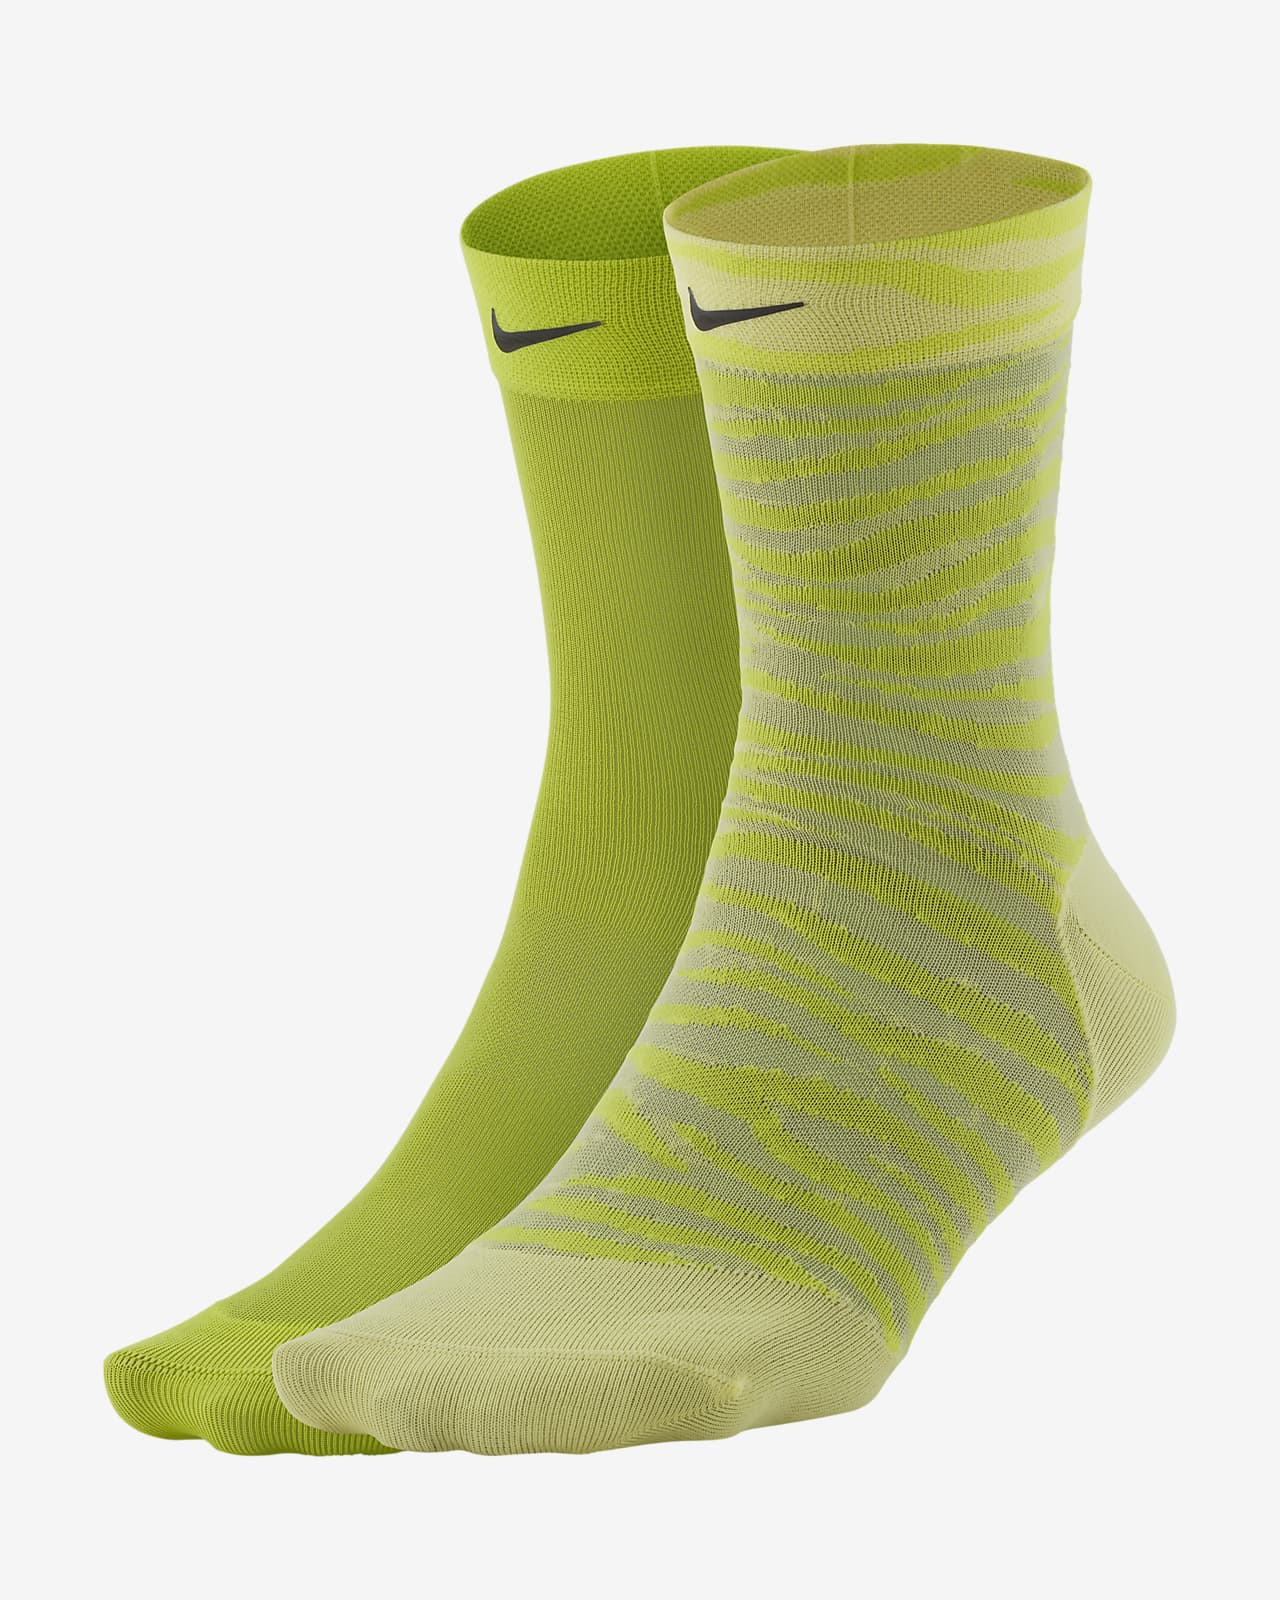 Nike Sheer Trainings-Knöchelsocken für Damen (2 Paar)